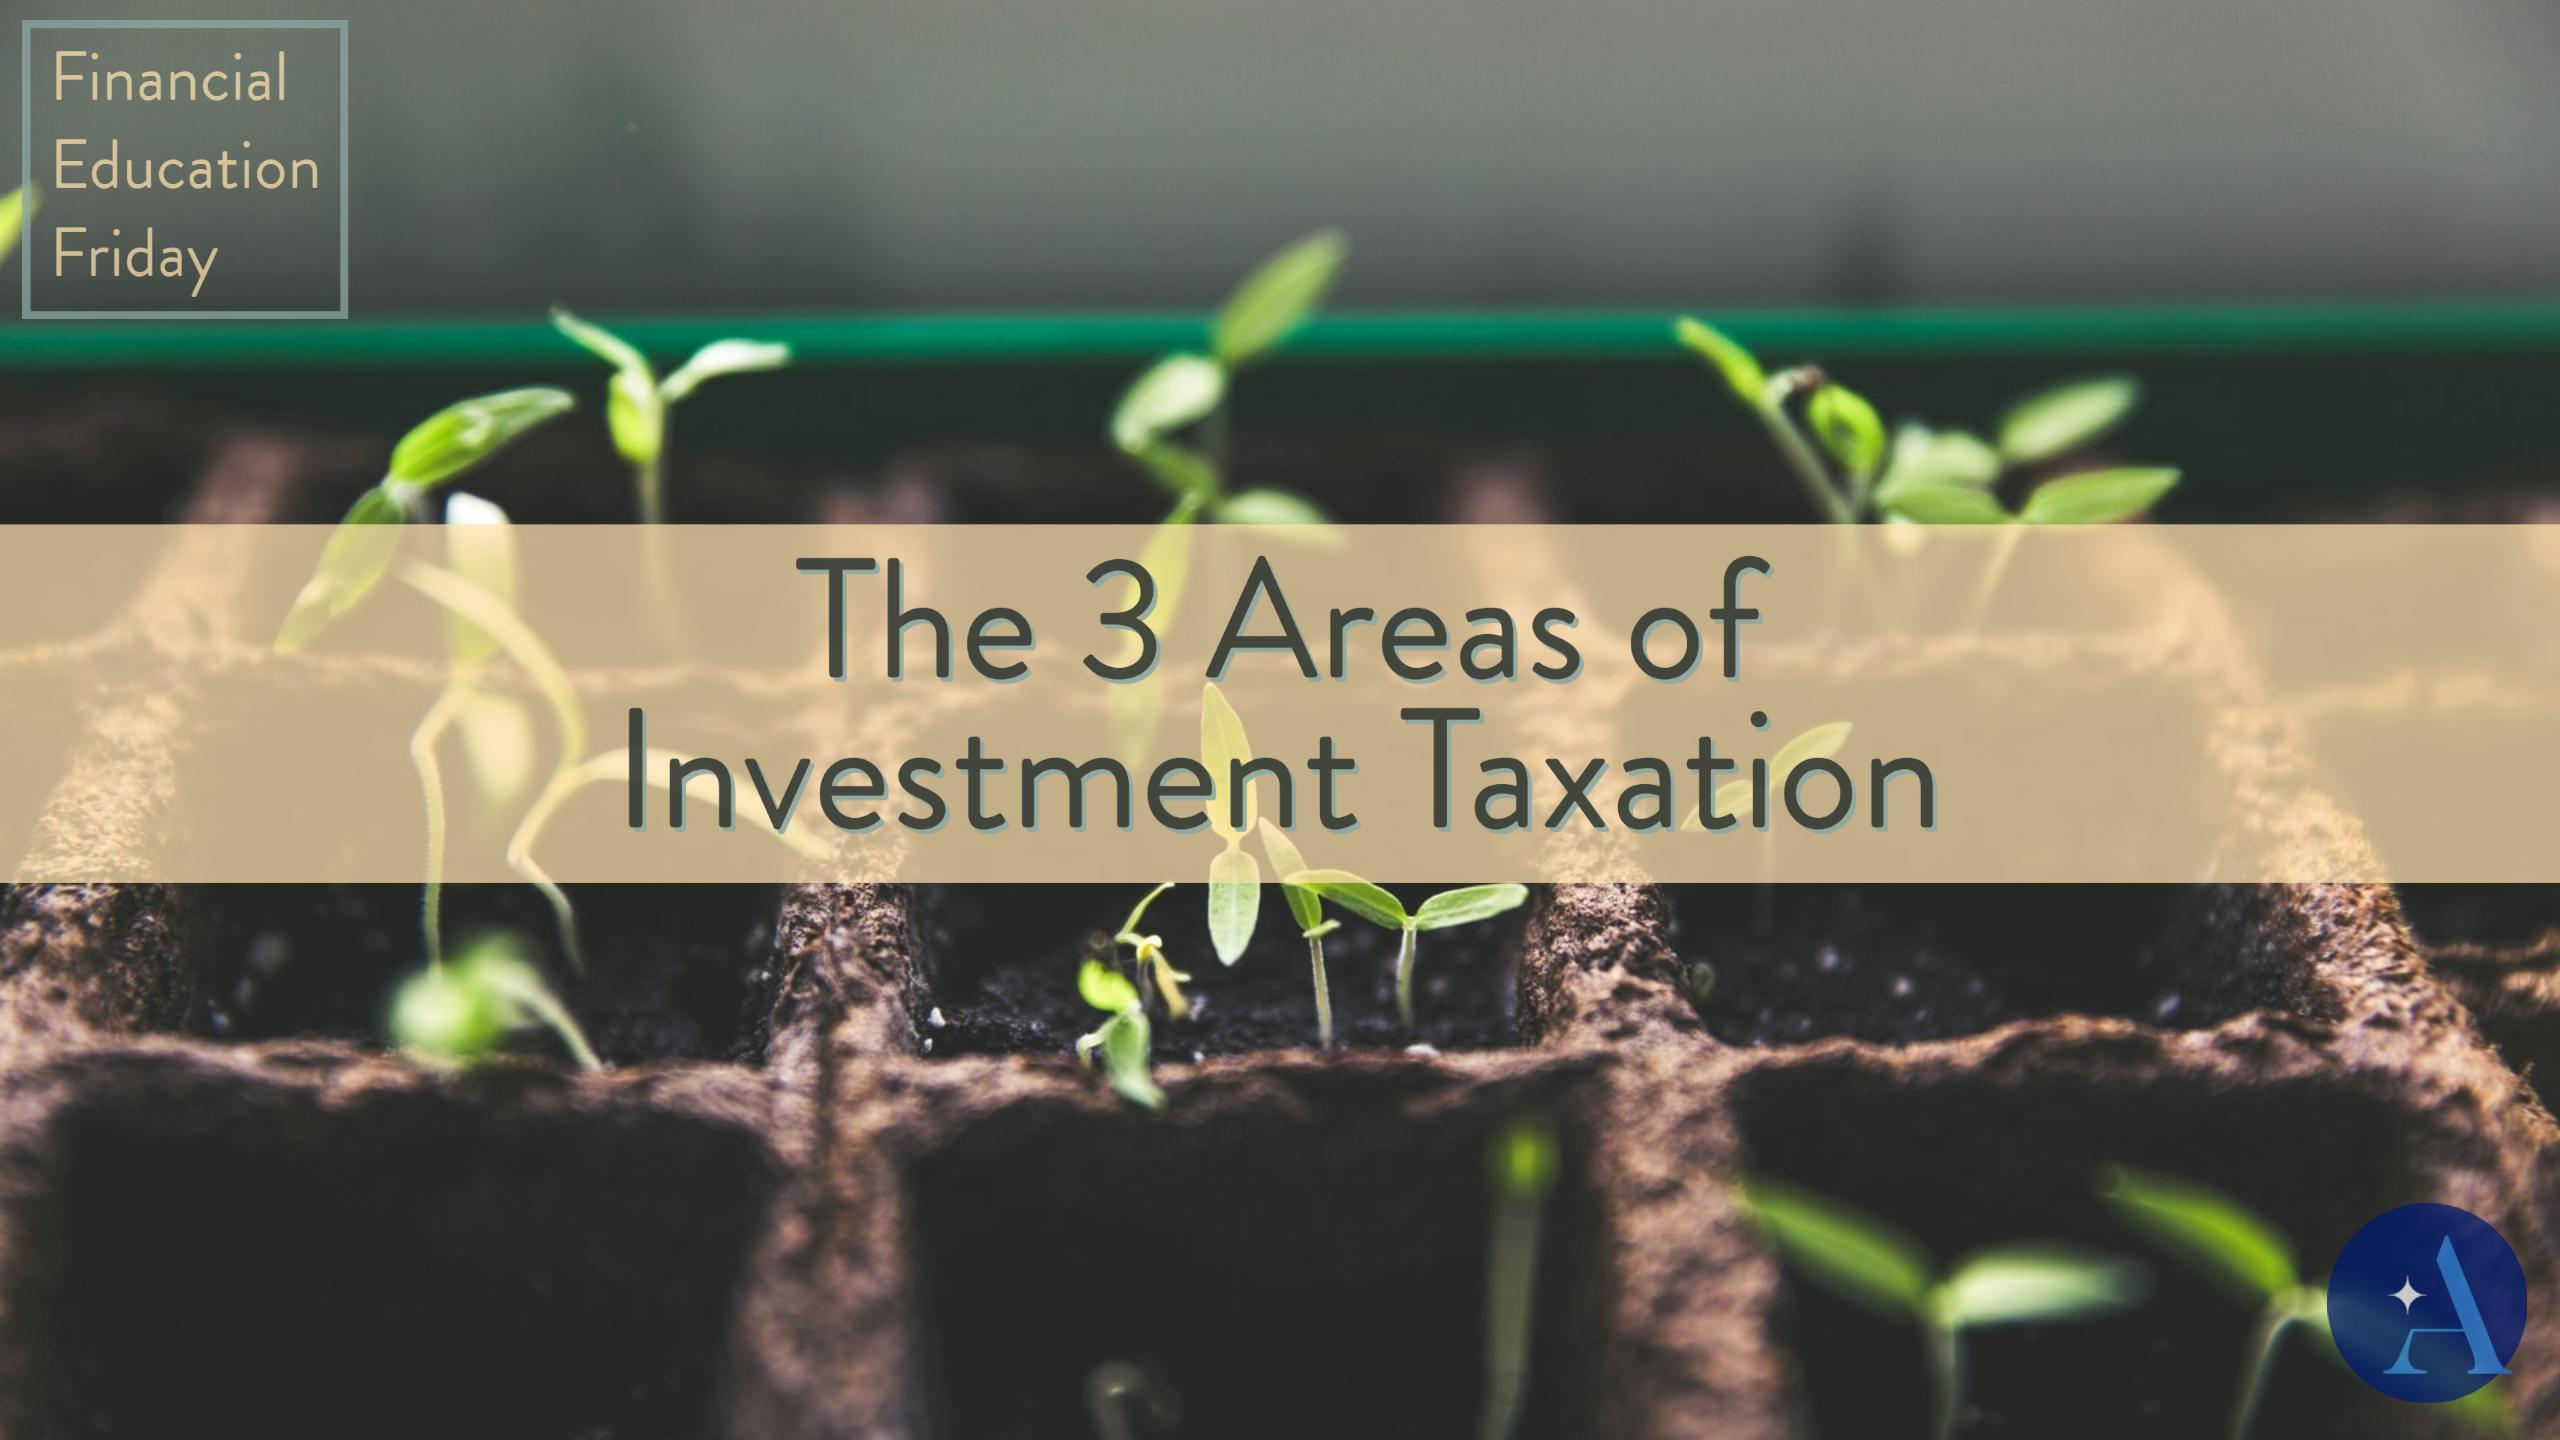 FinEdFriday: The 3 Areas of Investment Taxation Thumbnail